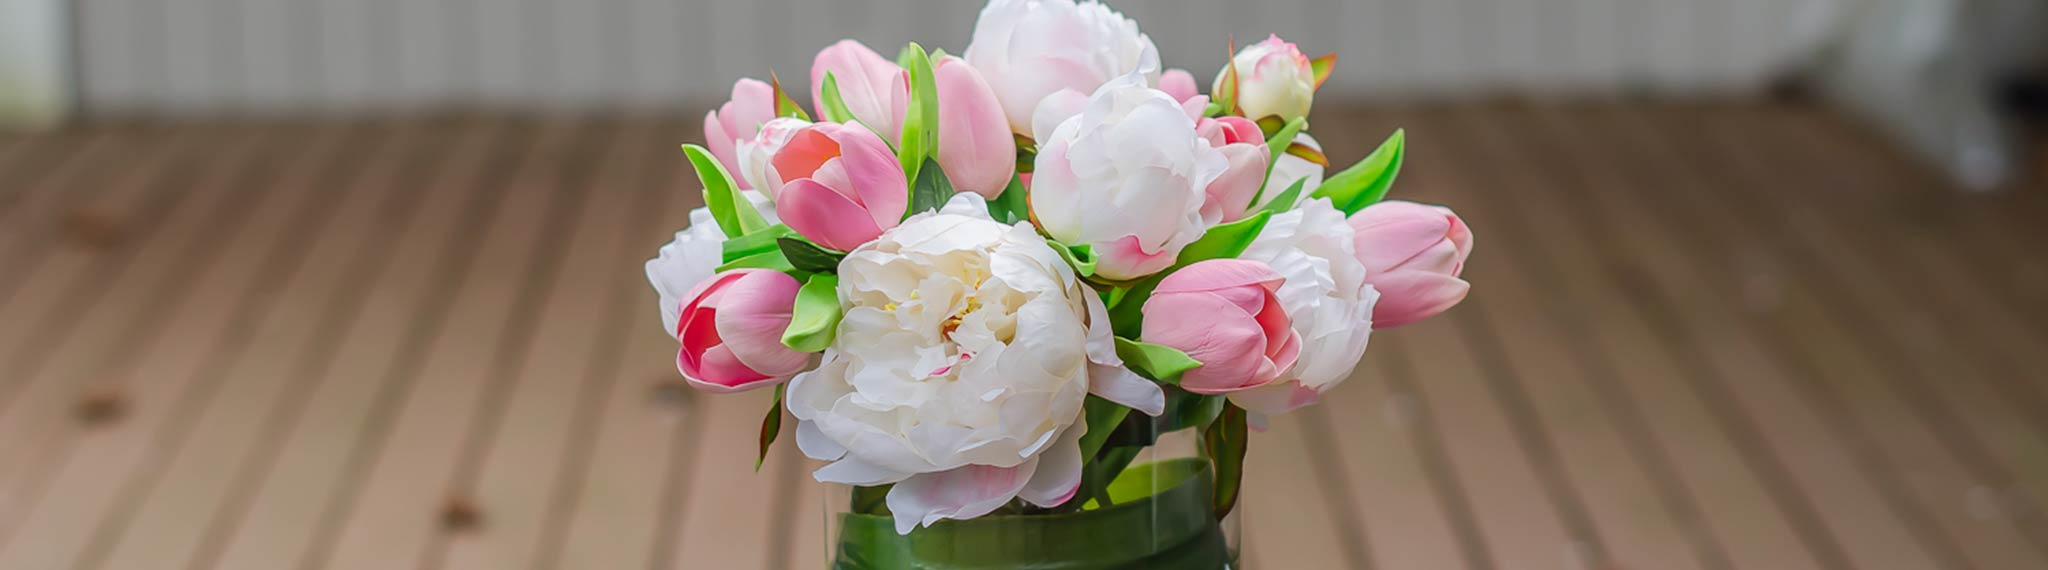 Real Touch Faux Artificial Flower Arrangements And Designs Flovery